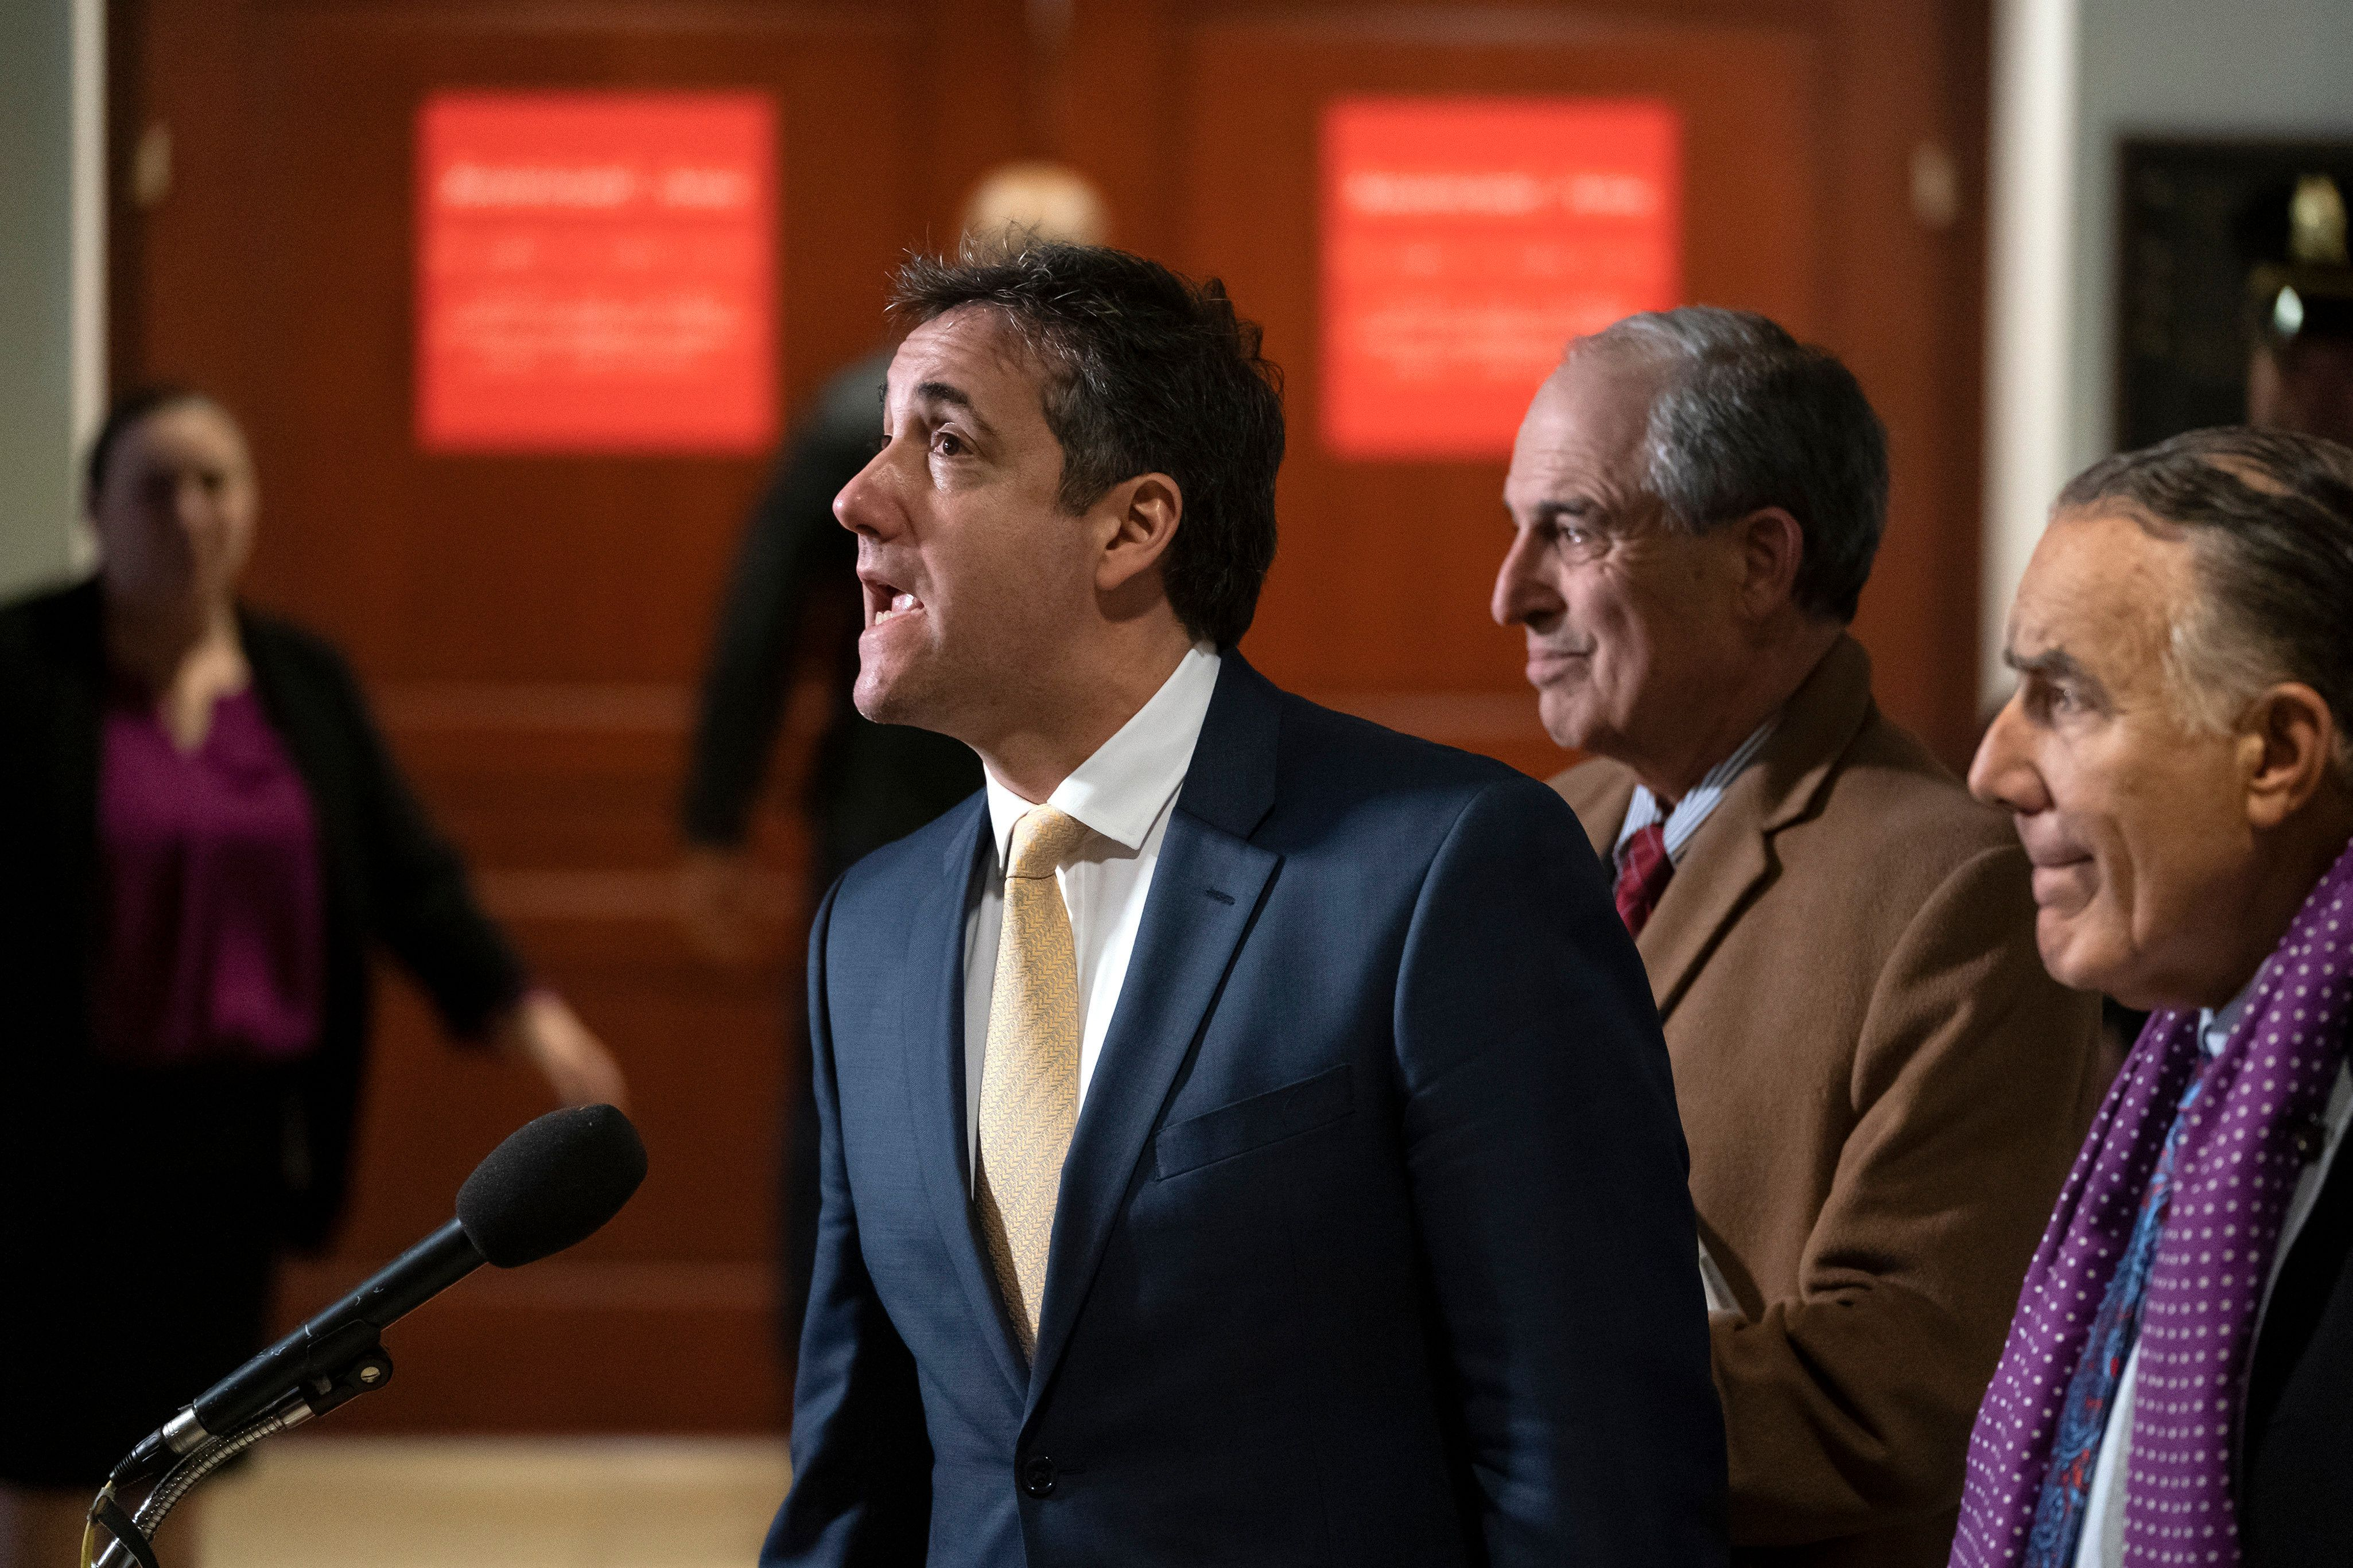 President Donald Trump's former lawyer, Michael Cohen, joined at right by his attorneys Lanny Davis and Michael Monico, leaves a closed-door interview with the House Intelligence Committee at the end of three days of congressional testimony on Capitol Hill in Washington, Thursday, Feb. 28, 2019. (AP Photo/J. Scott Applewhite)